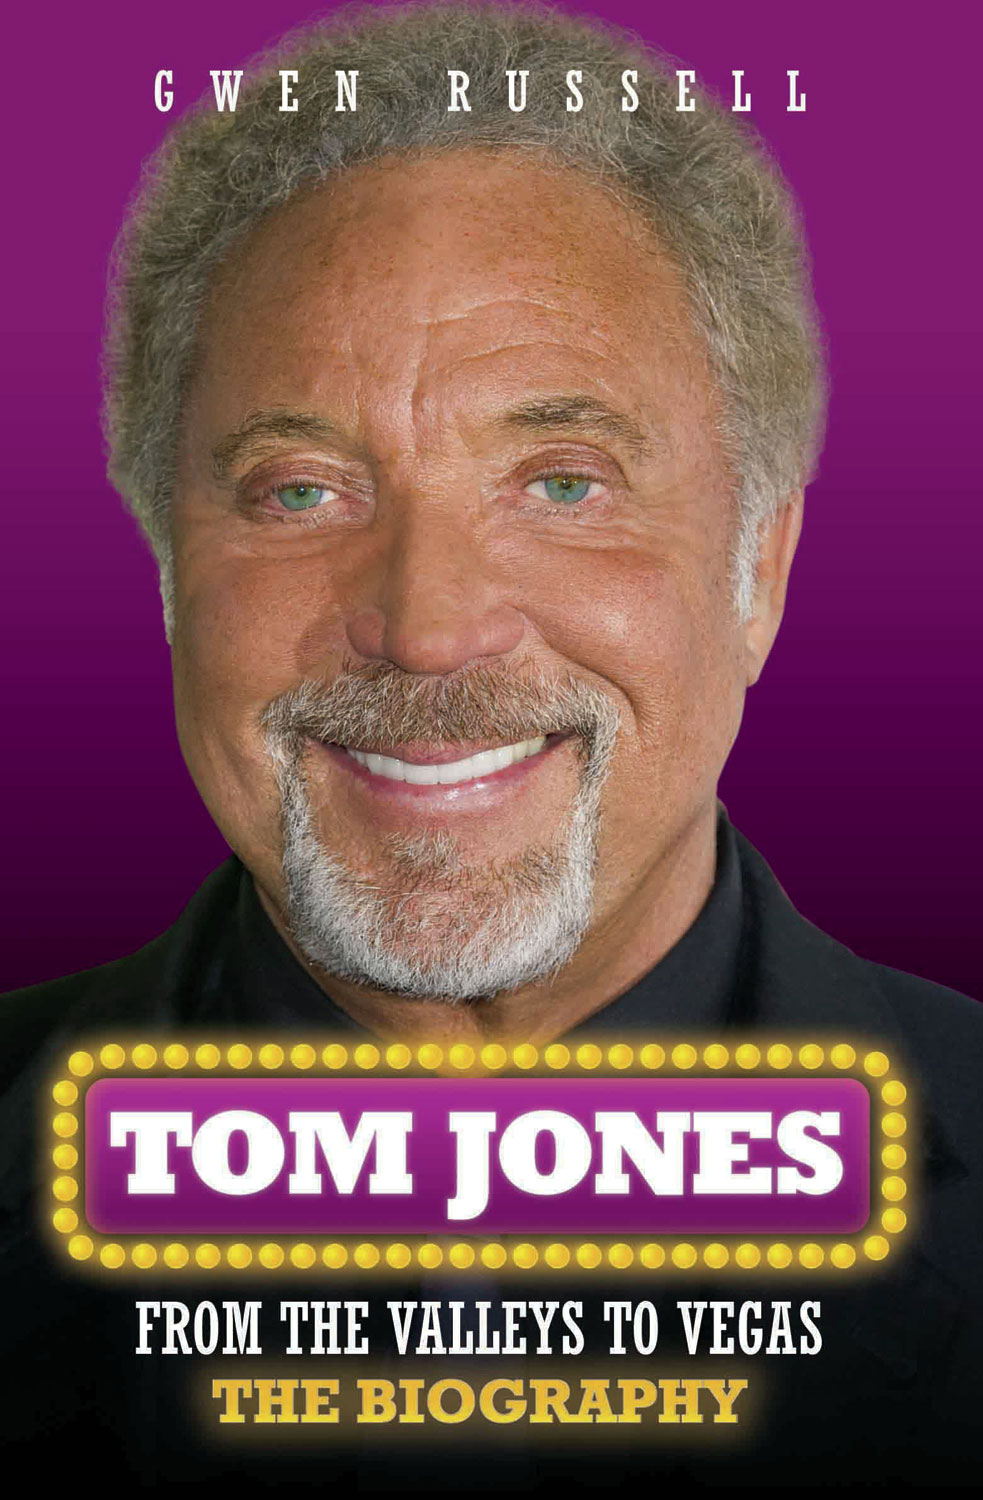 Tom Jones By: Gwen Russell